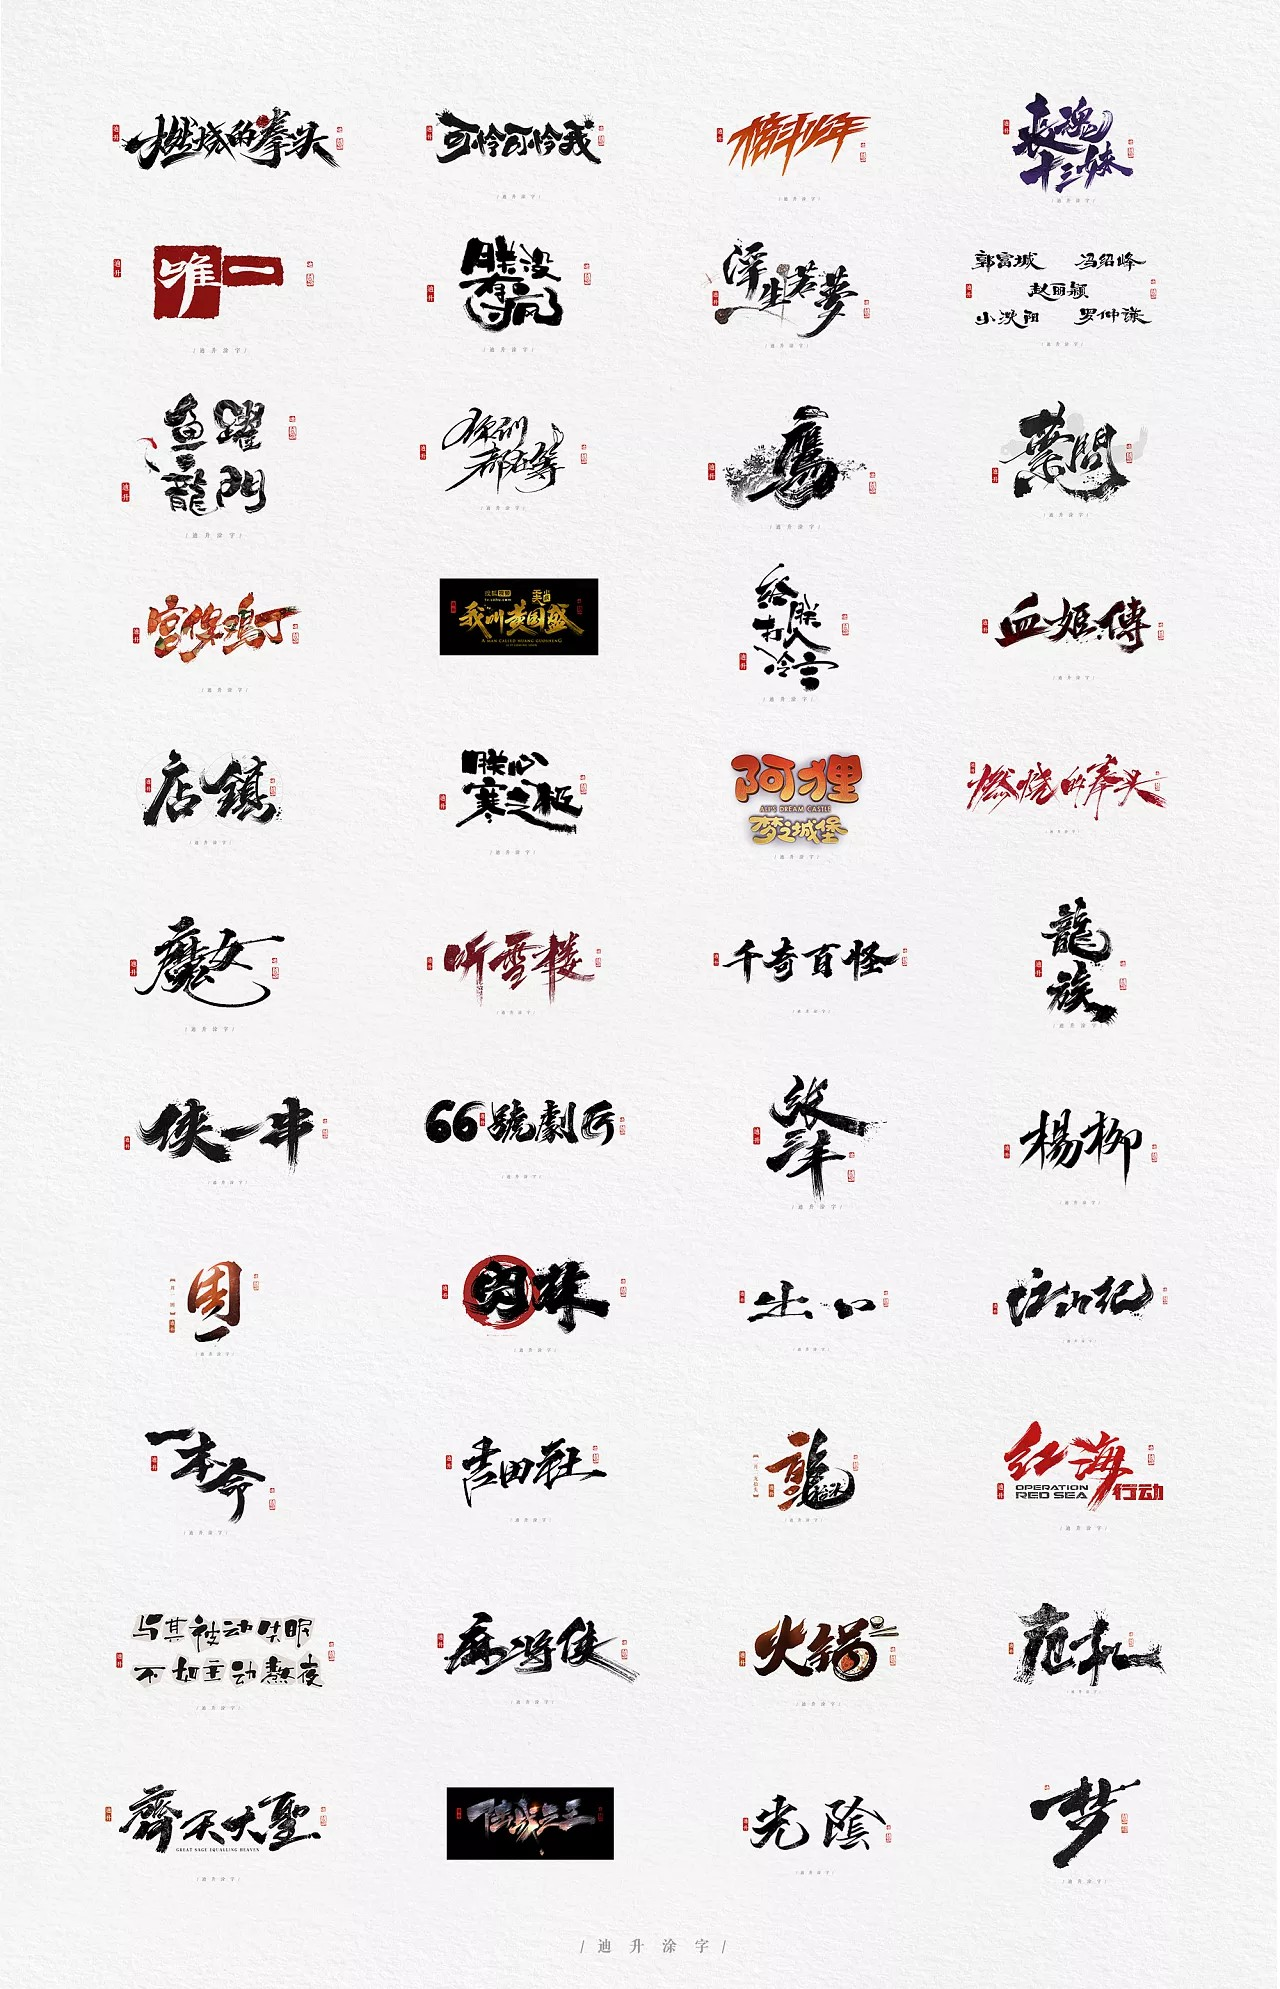 chinesefontdesign.com 2018 03 29 04 19 52 729714 40+ Carefully selected handwritten Chinese font design